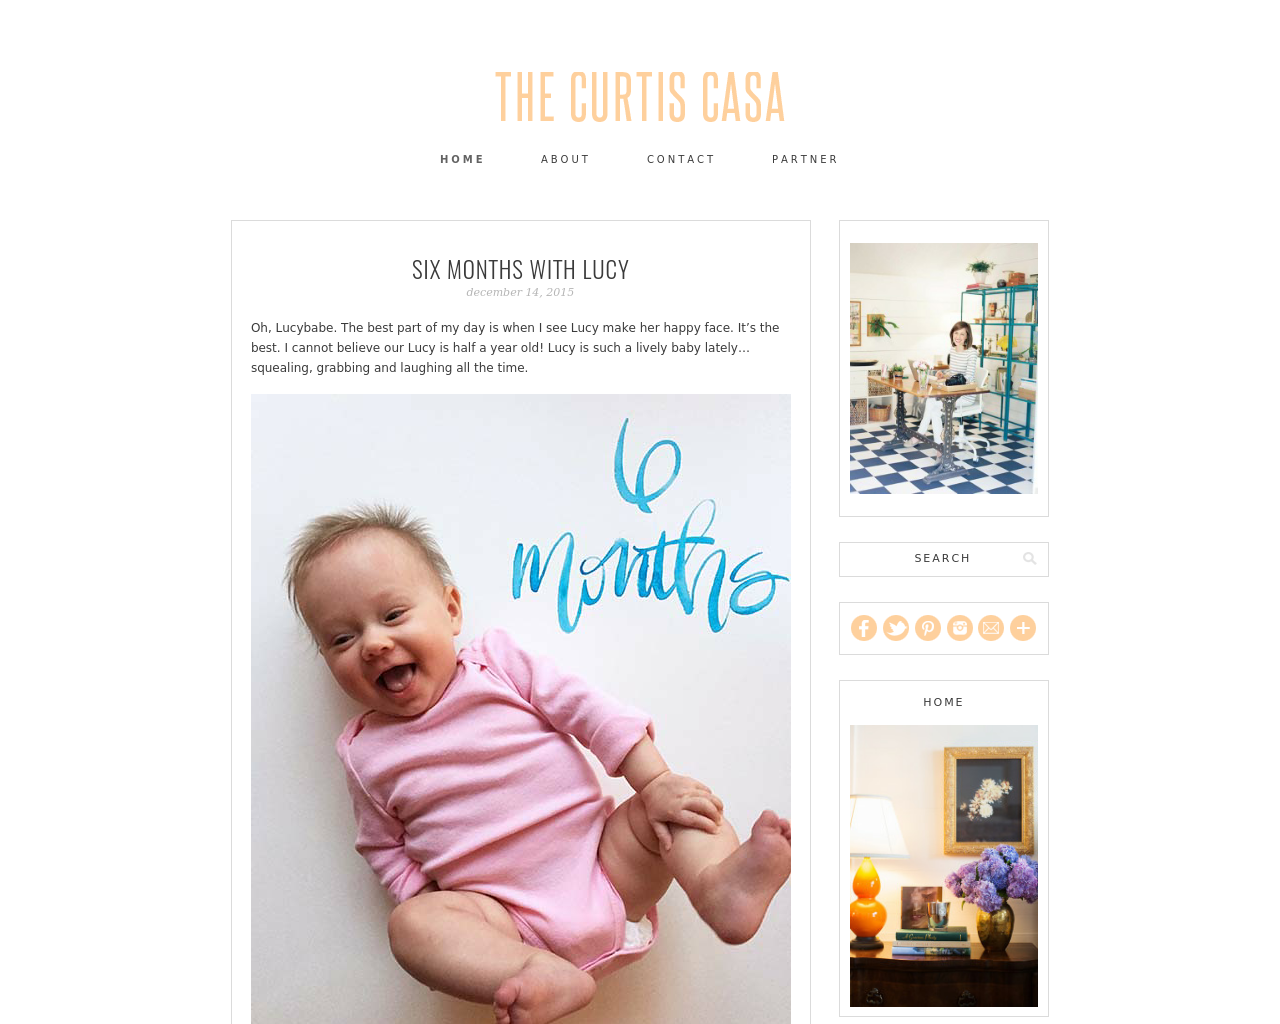 The-Curtis-Casa-Advertising-Reviews-Pricing